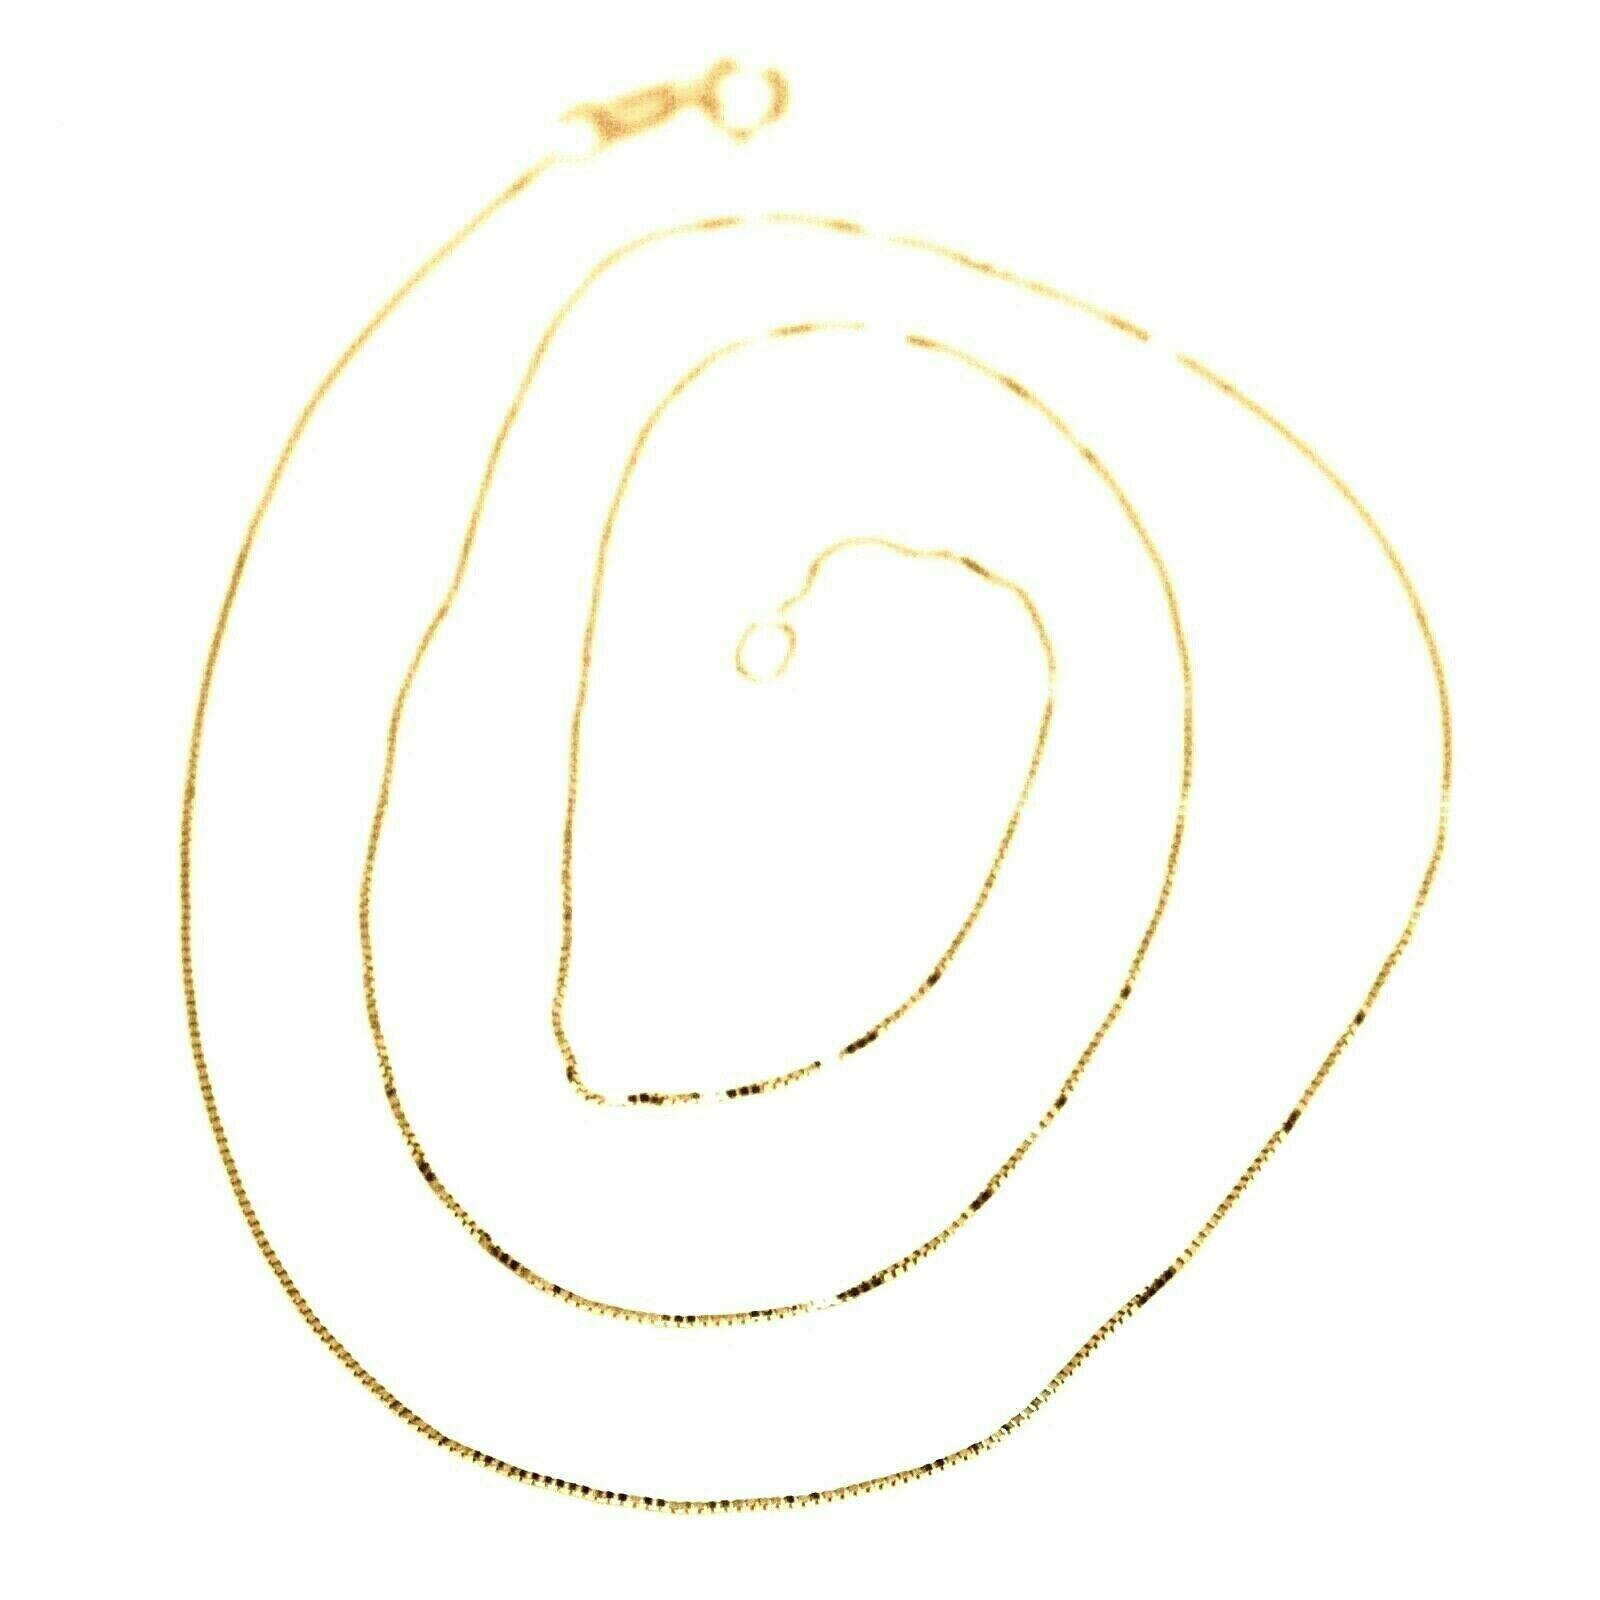 Chain Yellow Gold Or White 18K, Mini Jersey Venetian, Thickness 0.5 MM,60 CM